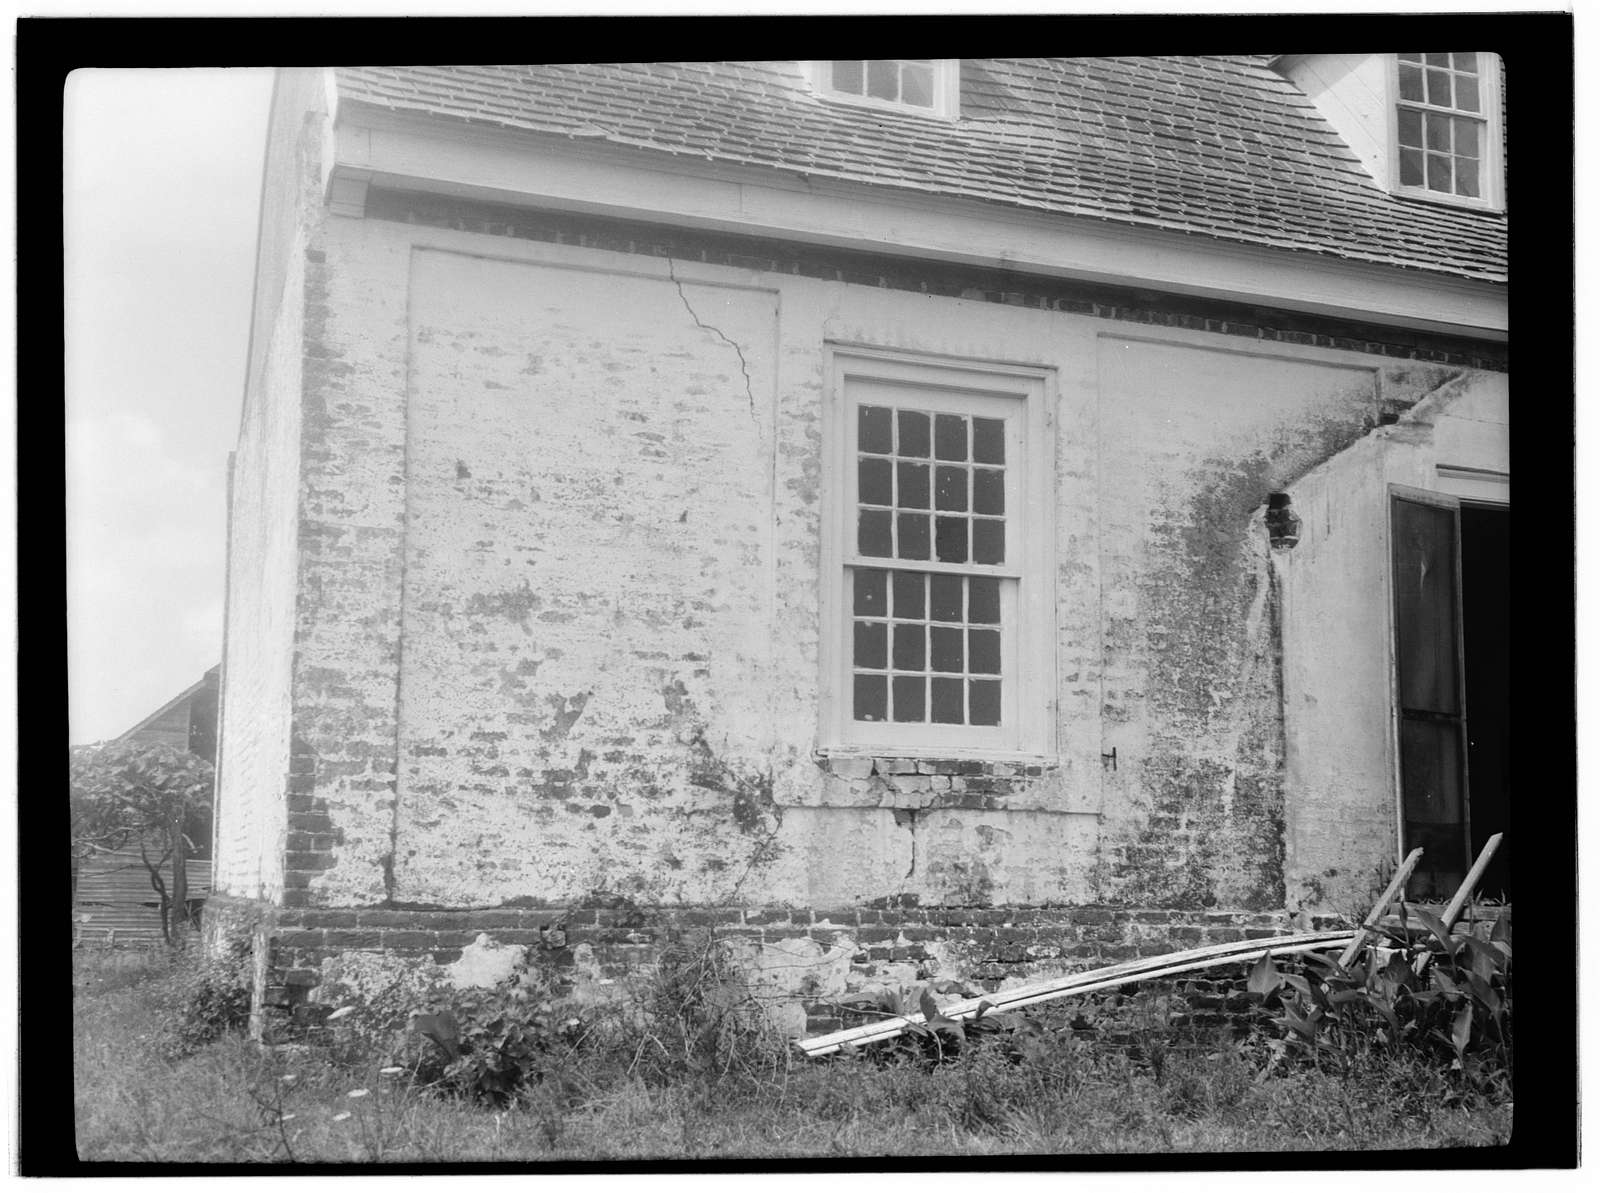 Hinman-Mason House, Guilford, Accomack County, VA